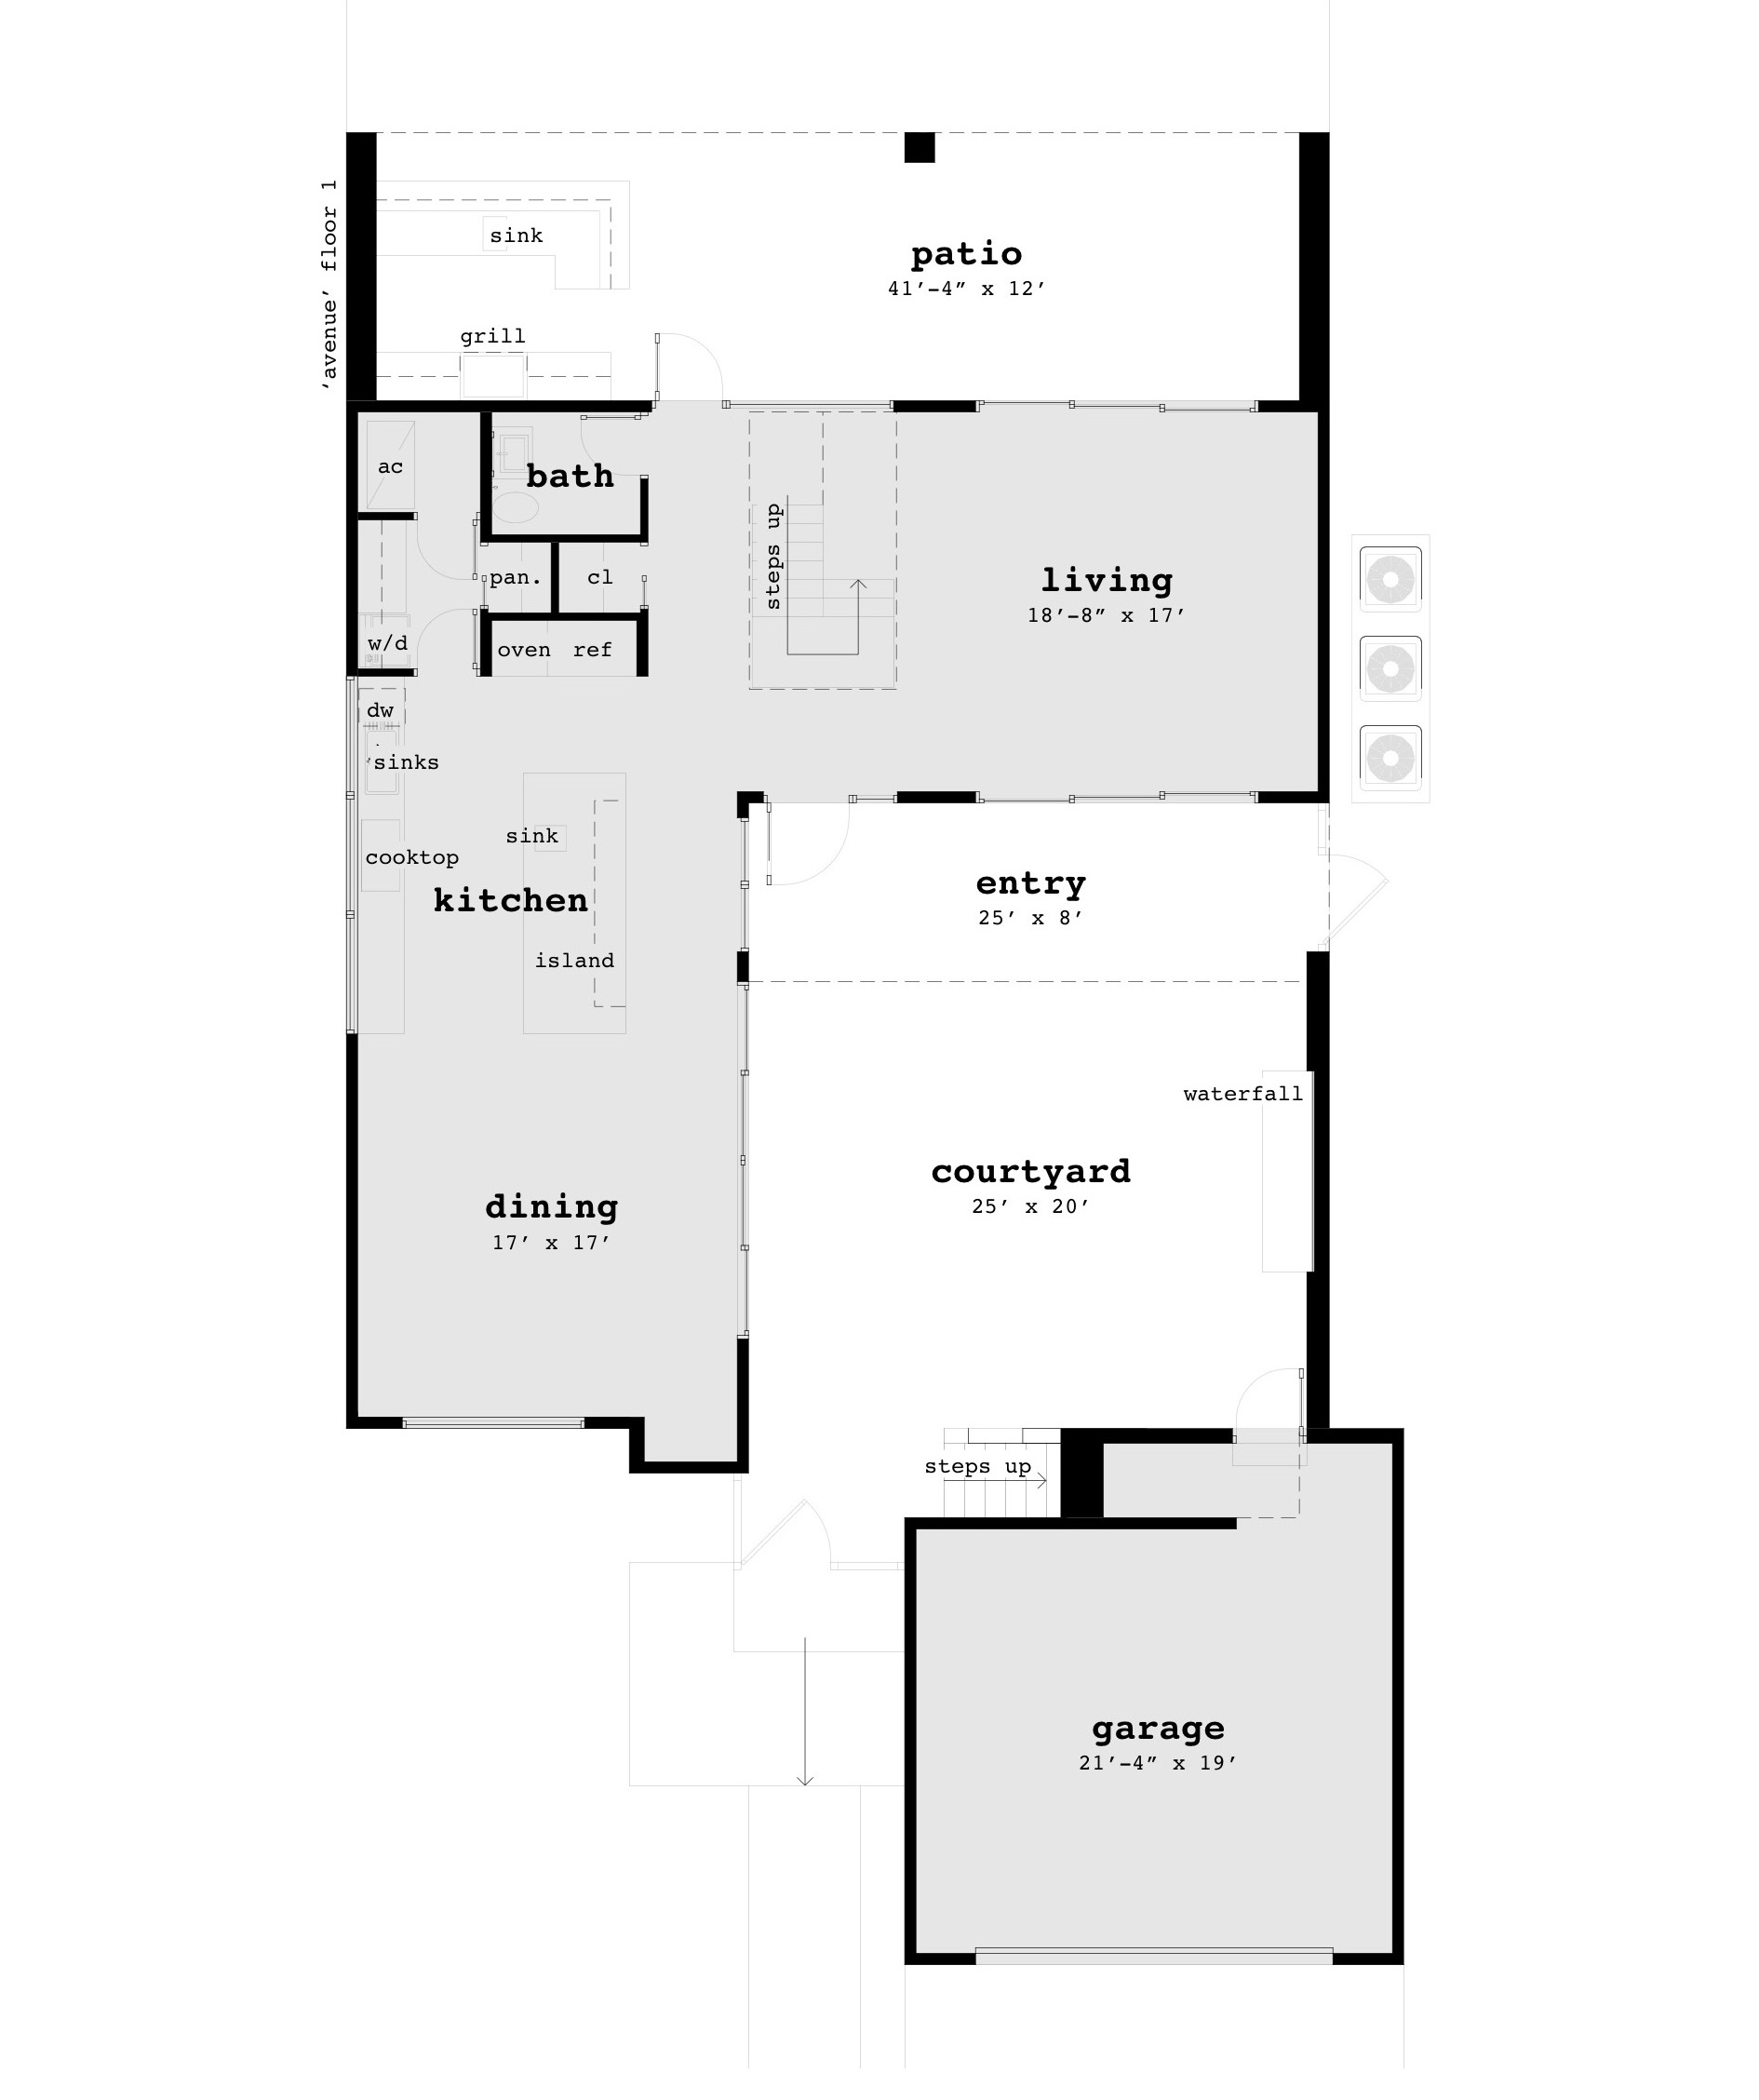 Terrific 18 x 20 house plans gallery best interior for 10x20 tiny house floor plans